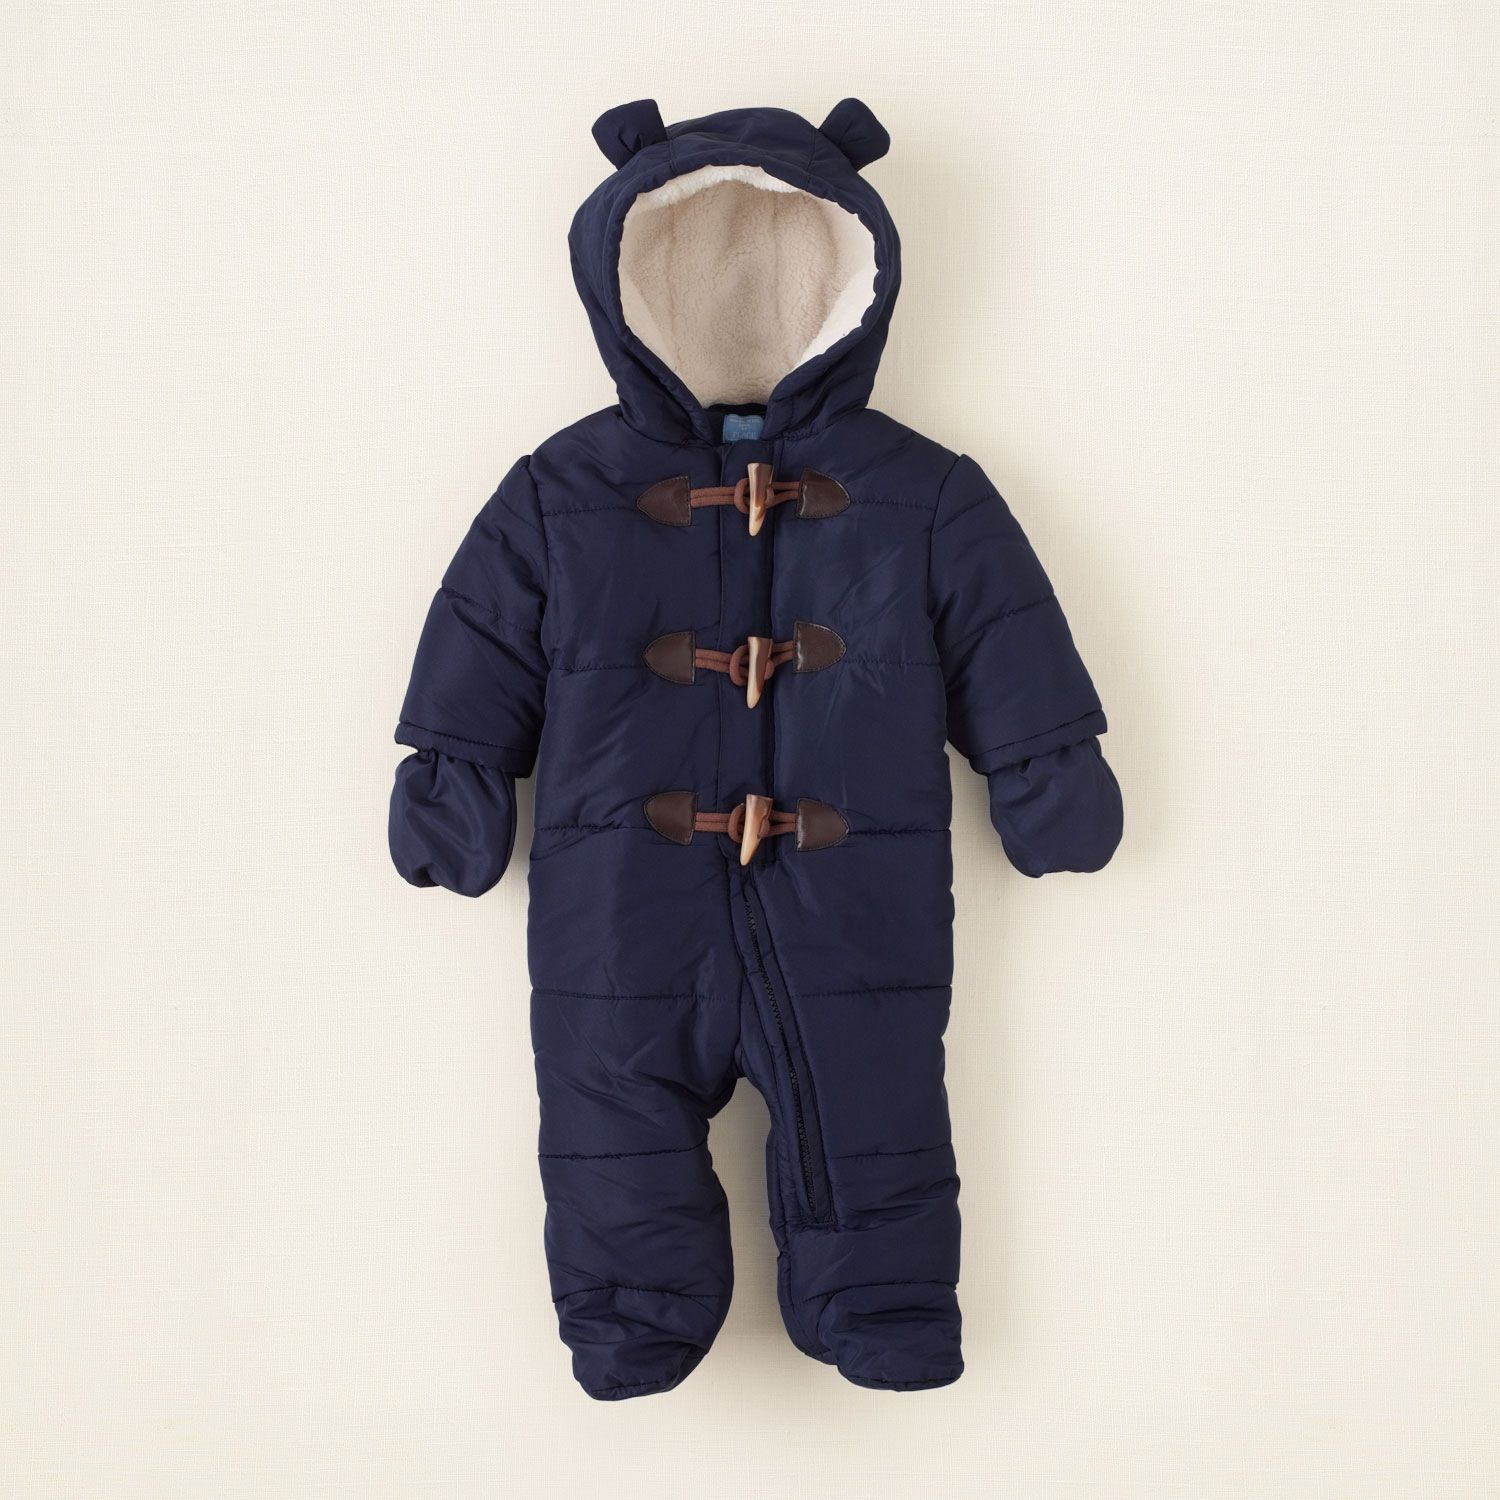 Shop for and buy snowsuit online at Macy's. Find snowsuit at Macy's.